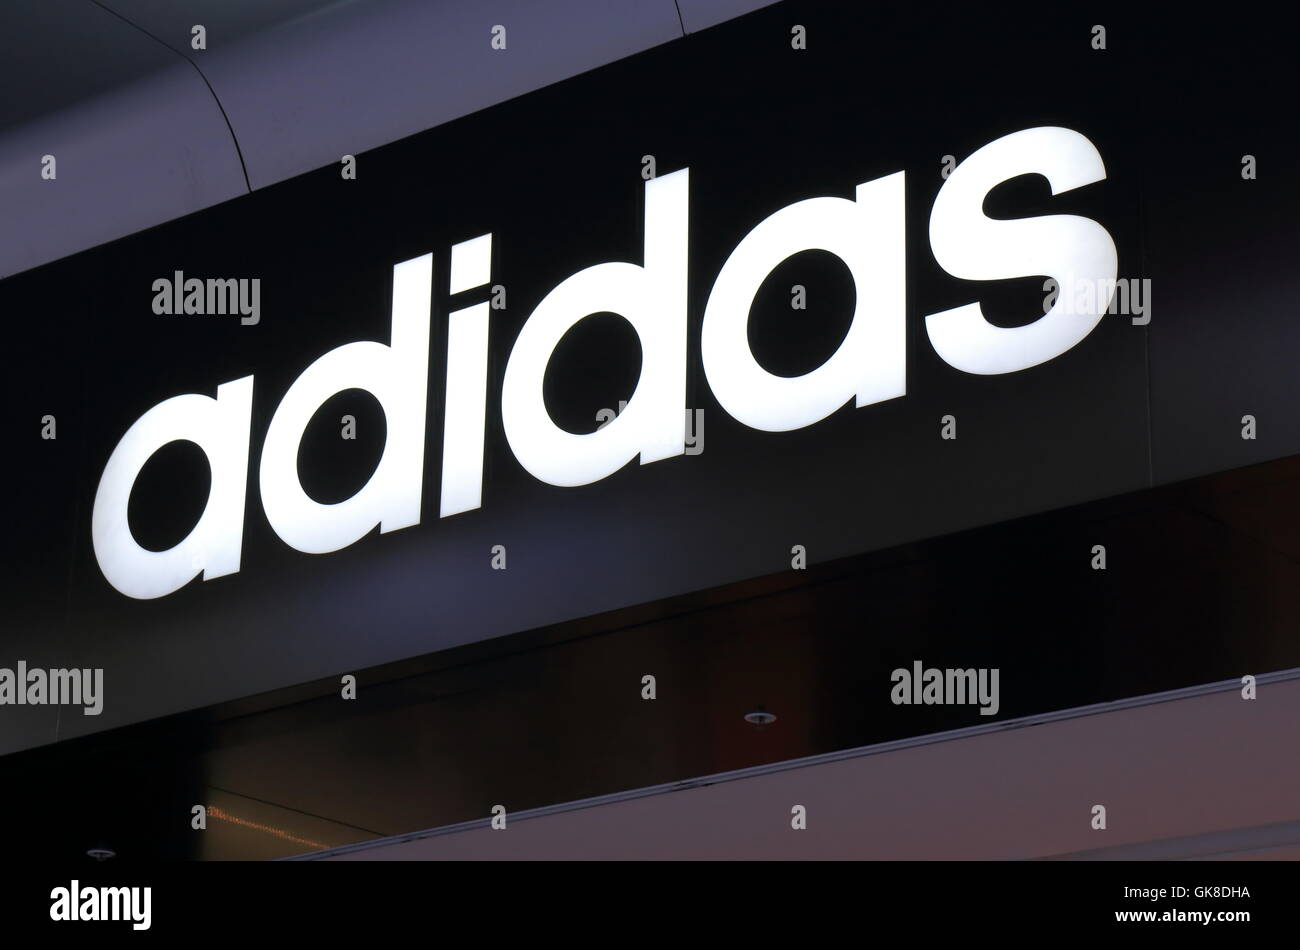 Logo of Adidas, German multinational corporation that designs and manufactures sports clothing and accessories. - Stock Image